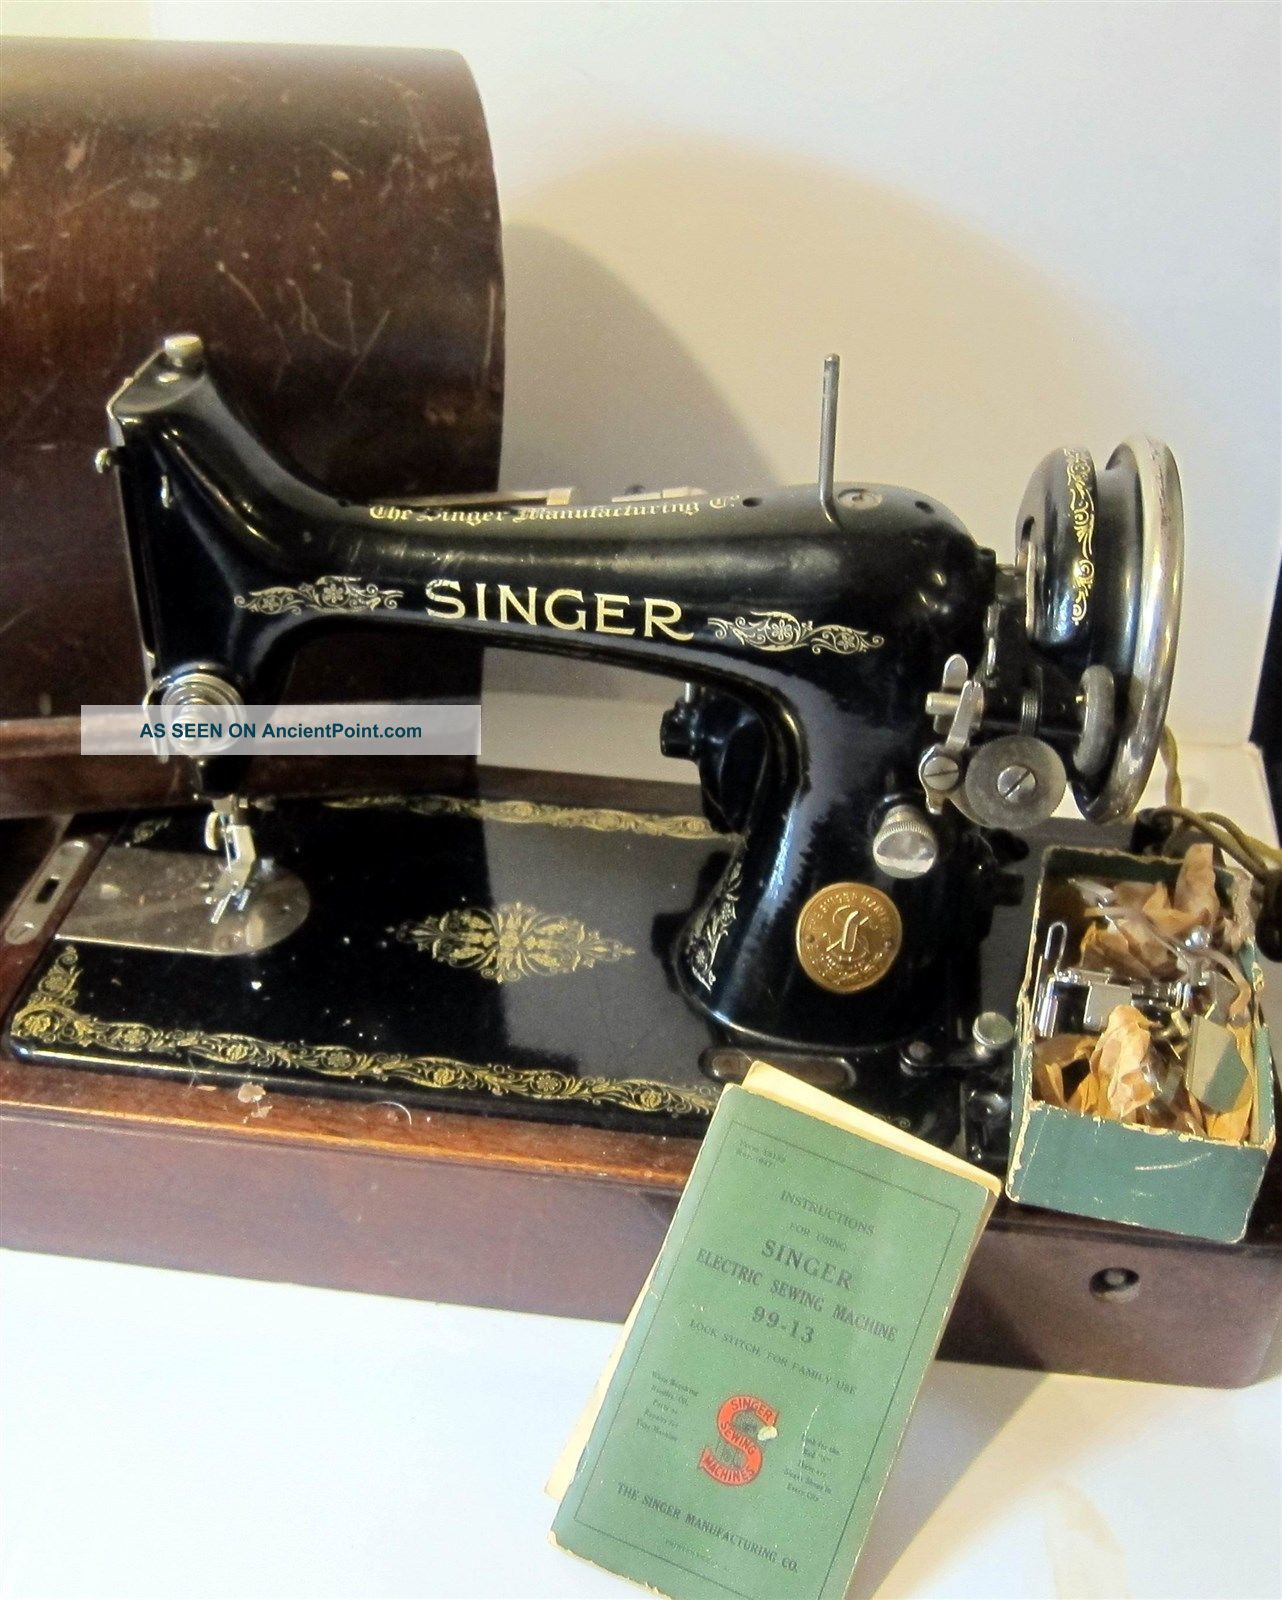 Singer Sewing Machine Model 99.  Ser Ab 421166 Wooden Dome Case - Made In 1926 Sewing Machines photo